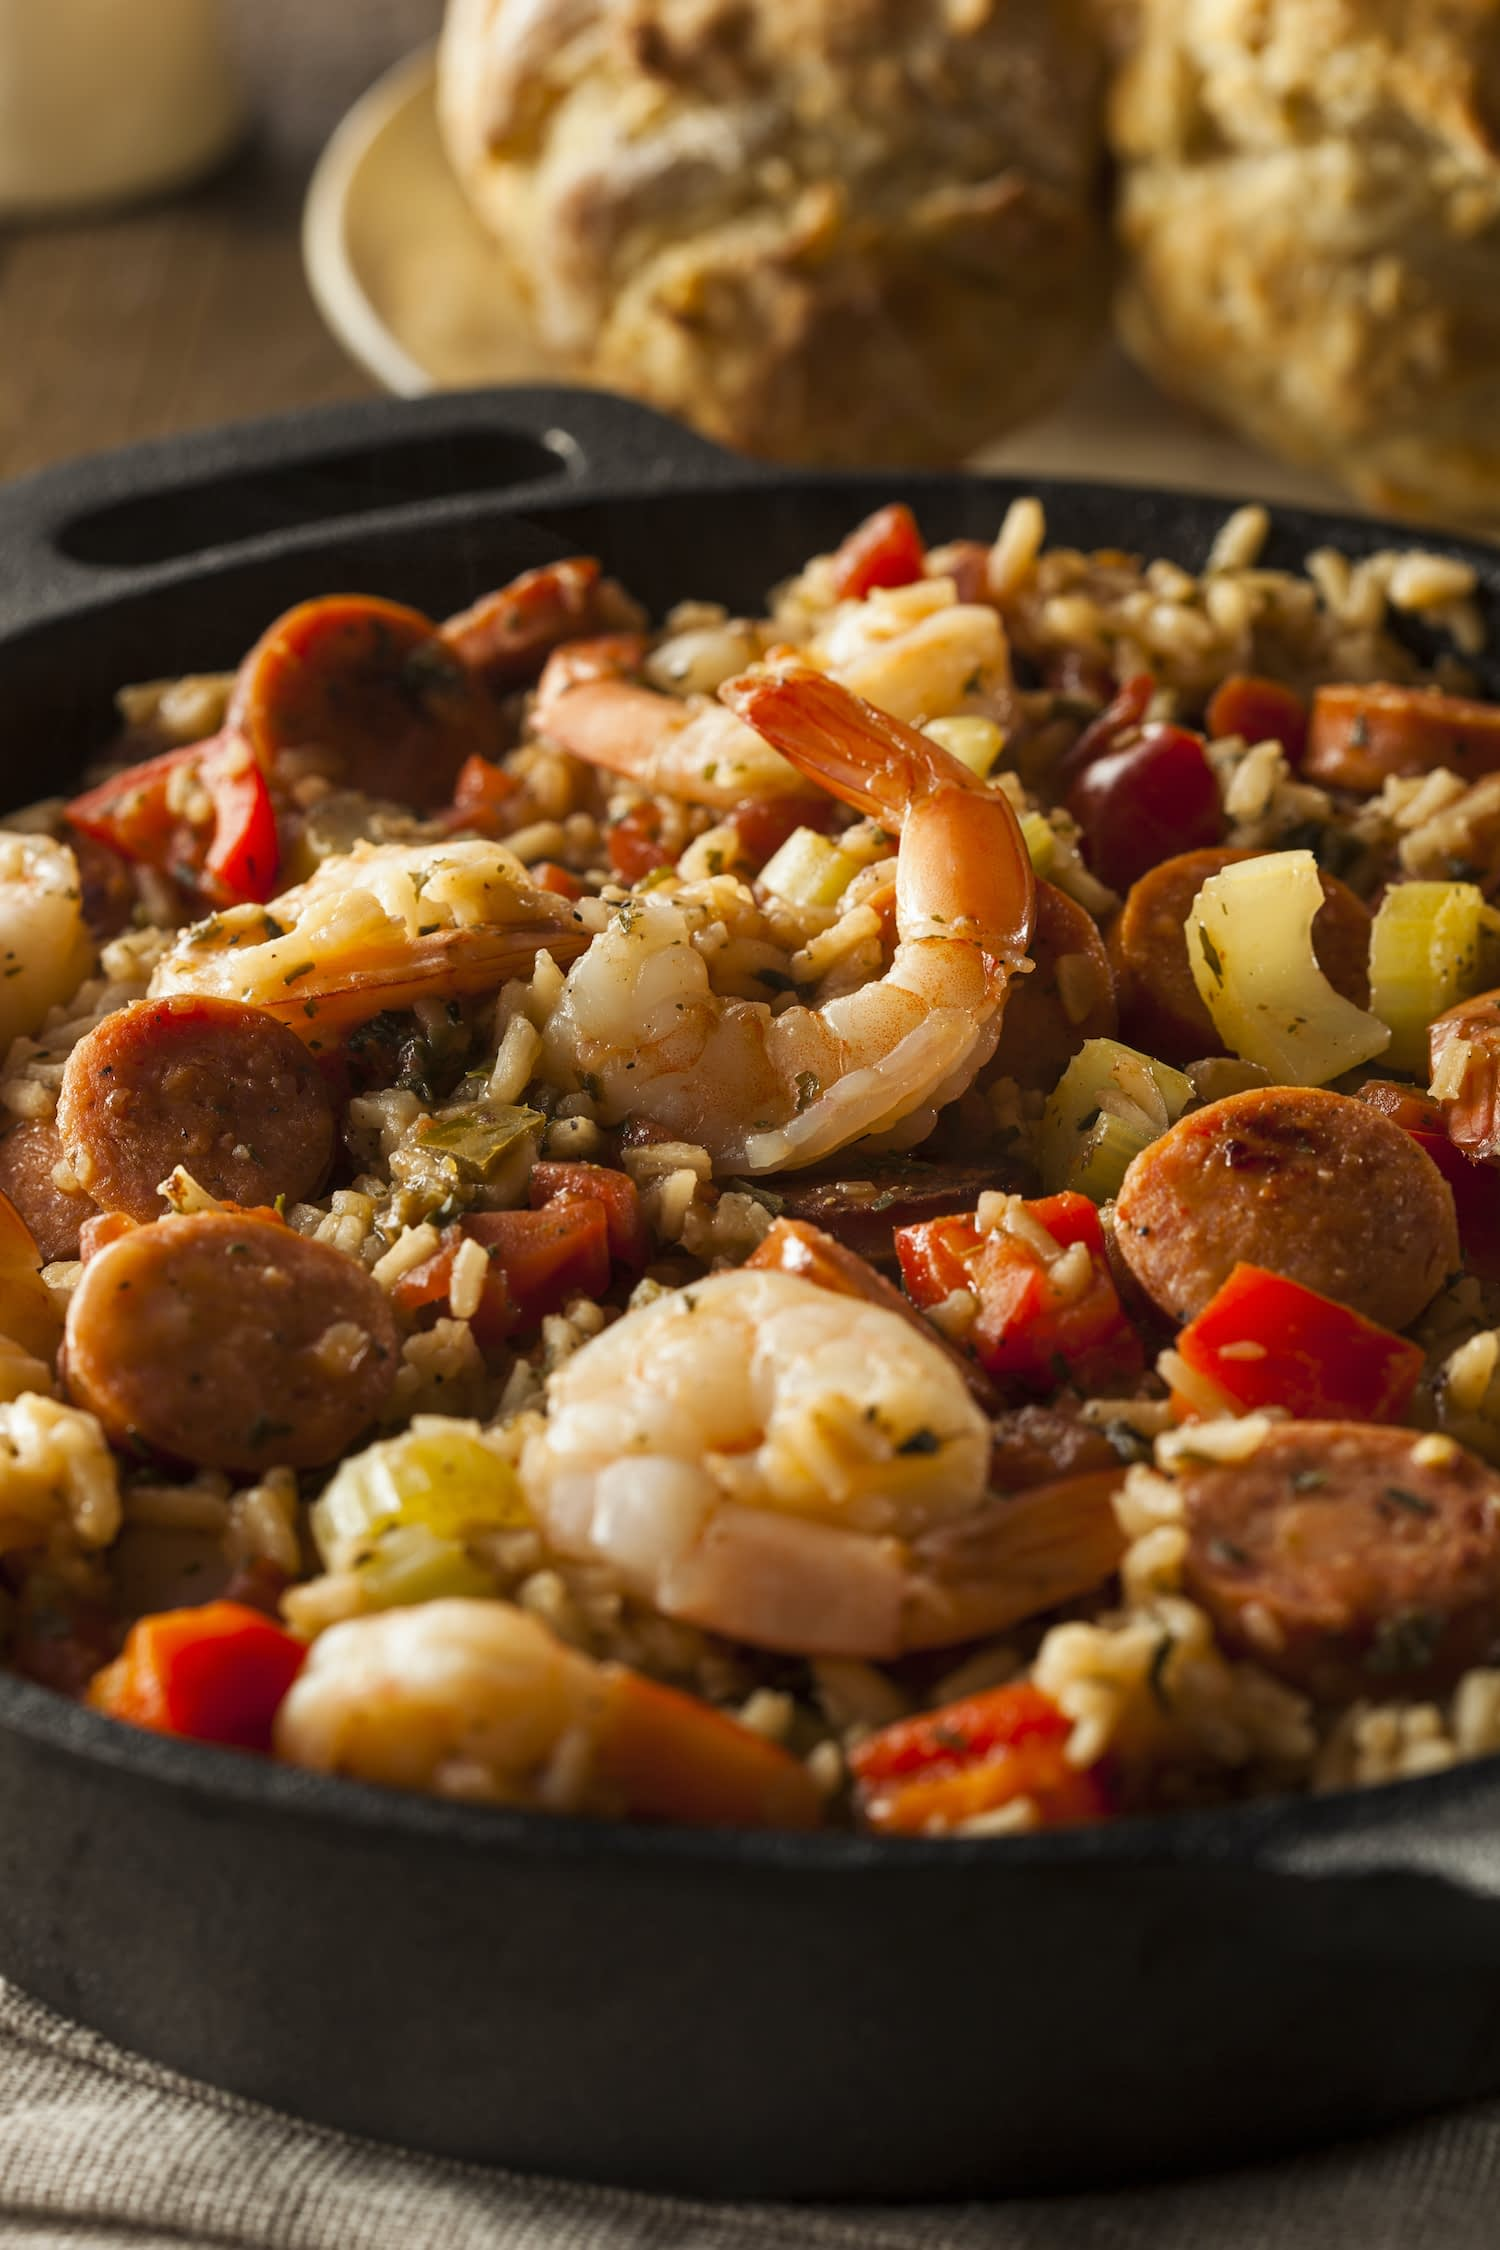 Spicy New Orleans cajun jambalaya with shrimp, peppers and celery in cast-iron skillet.